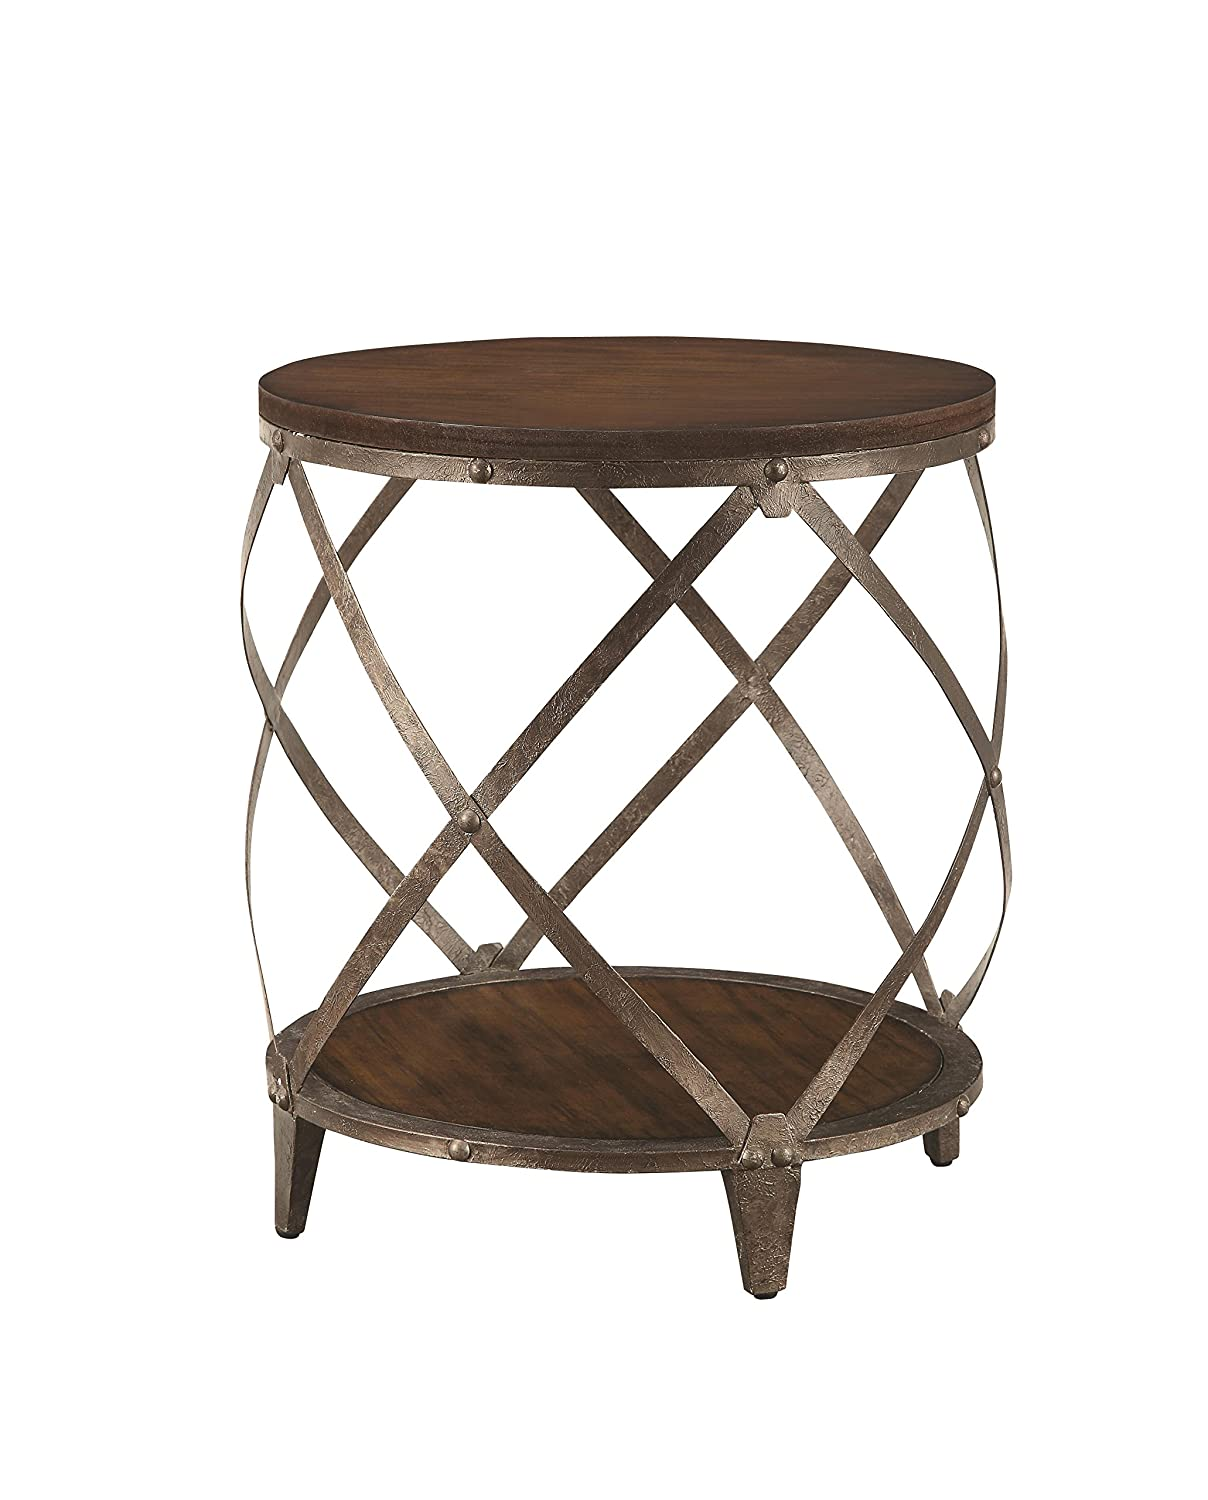 Merveilleux Amazon.com: Coaster Home Furnishings Casual Accent Table, Oak And Red  Brown: Kitchen U0026 Dining